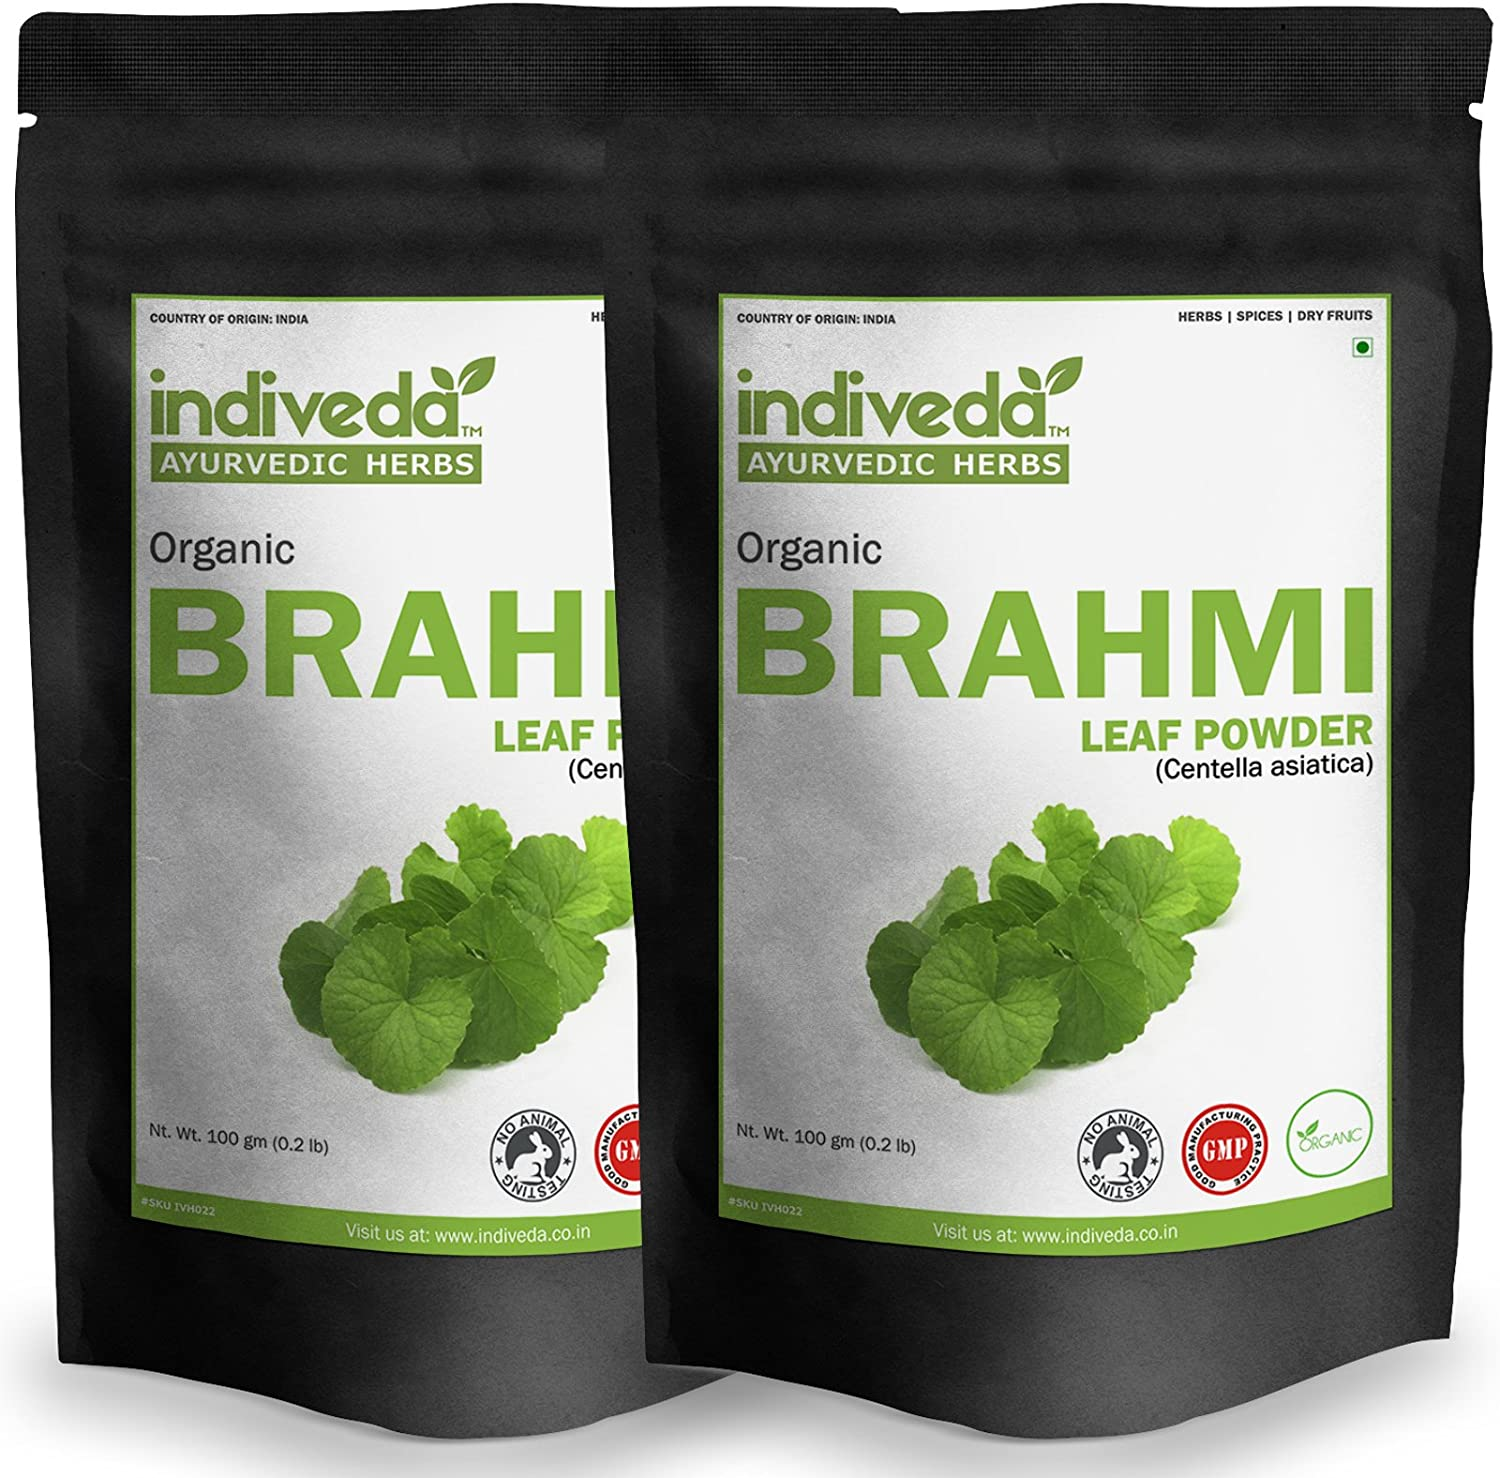 Indiveda Organic Brahmi Centella asiatica Powder for Support Healthy Brain, 100 Grams* Pack of 2